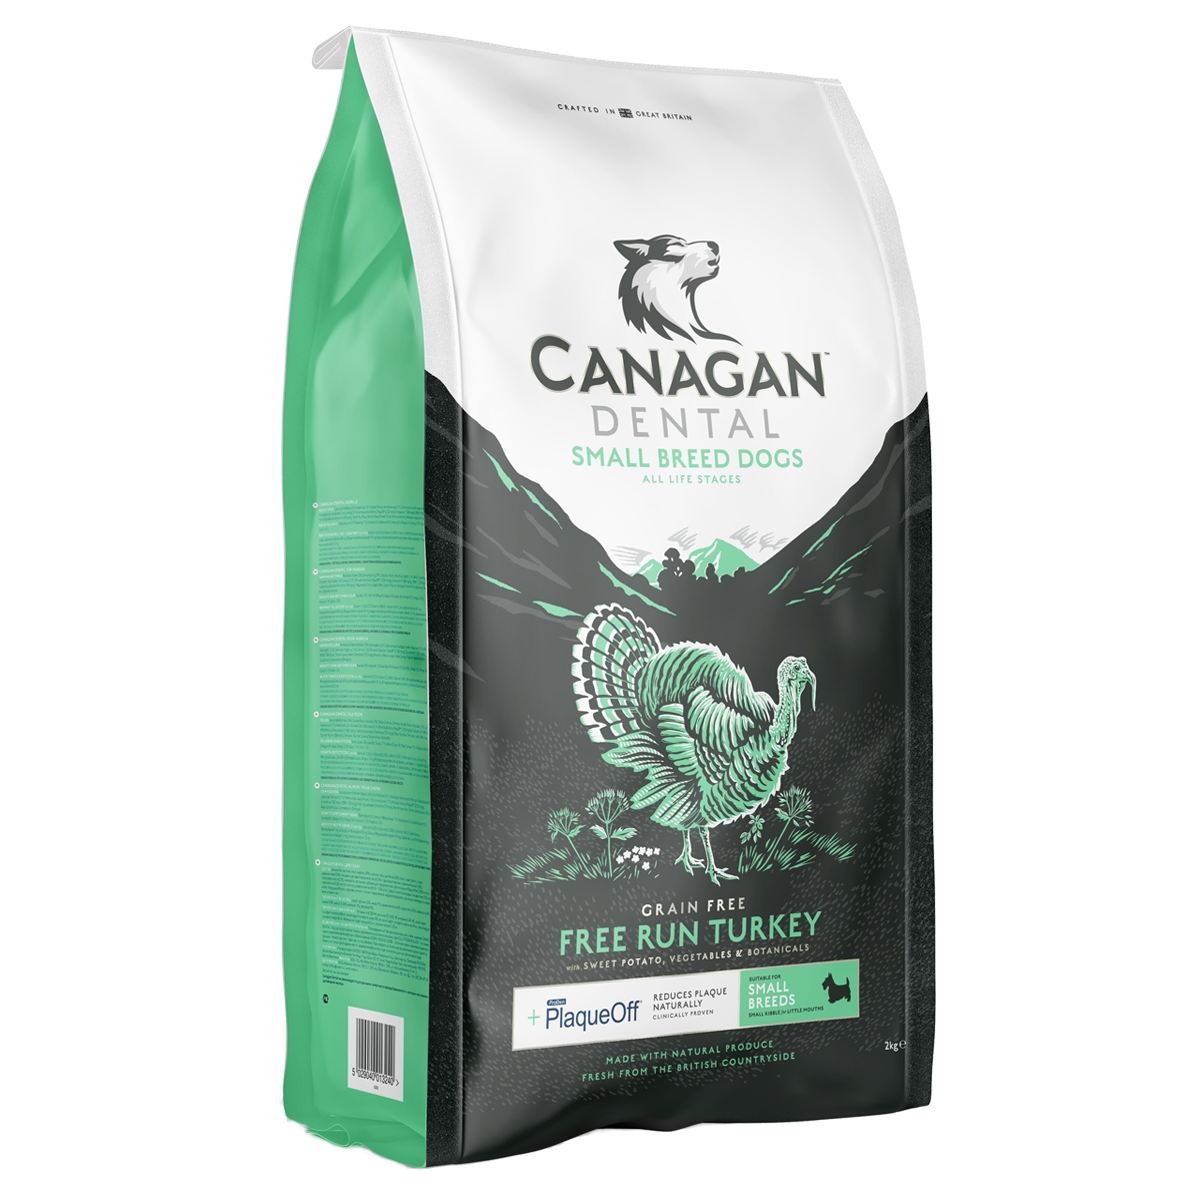 Canagan Small Breed Free-Run Turkey Dental Dogs